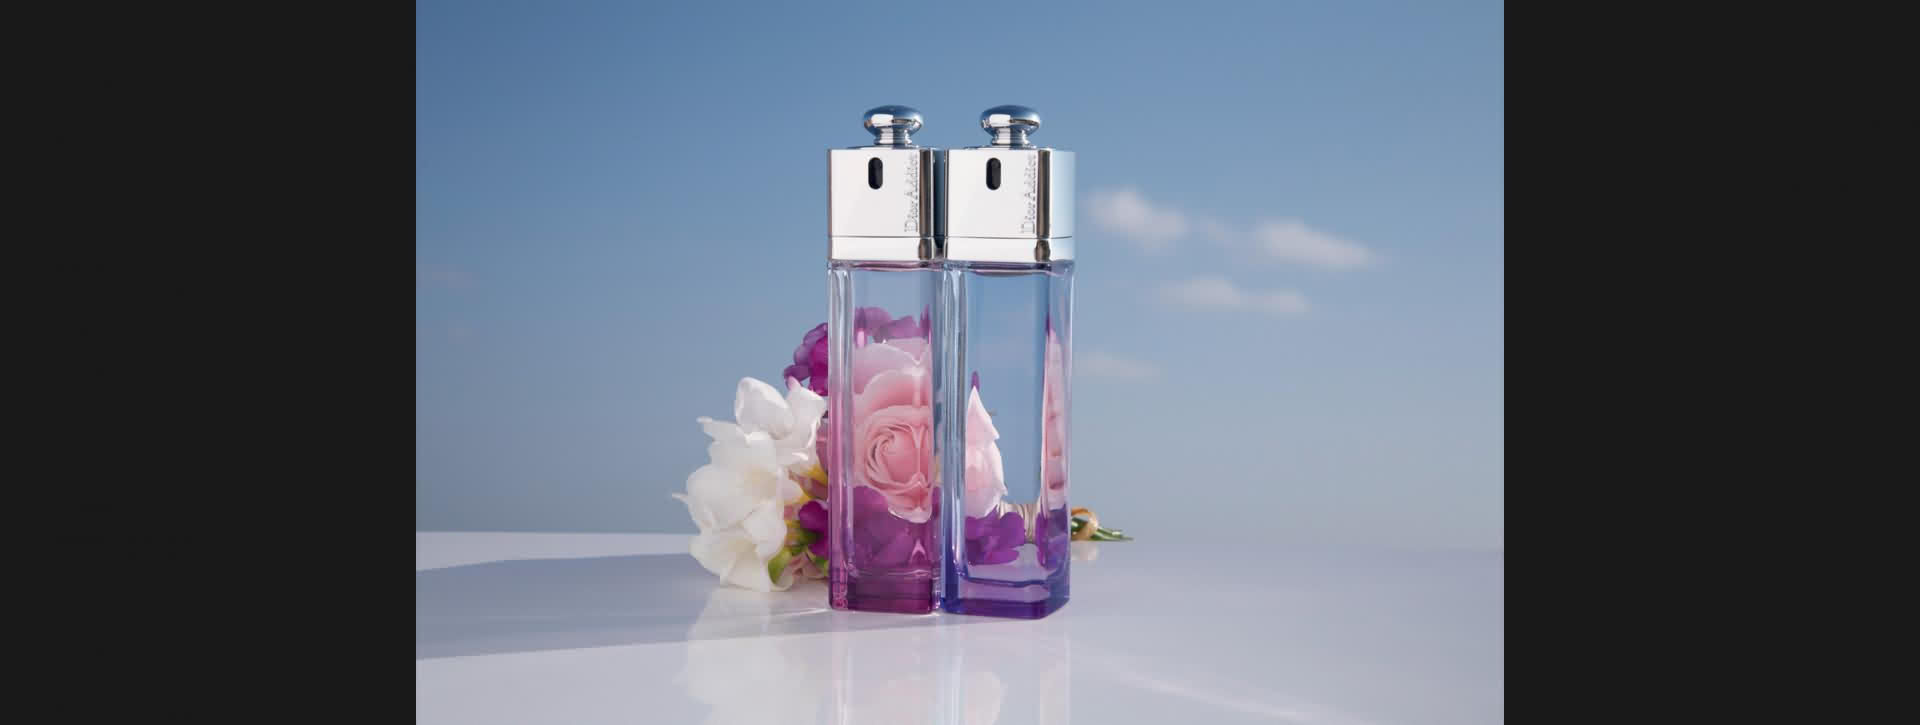 Nước hoa Dior Addict Eau Fraiche - Photo 4